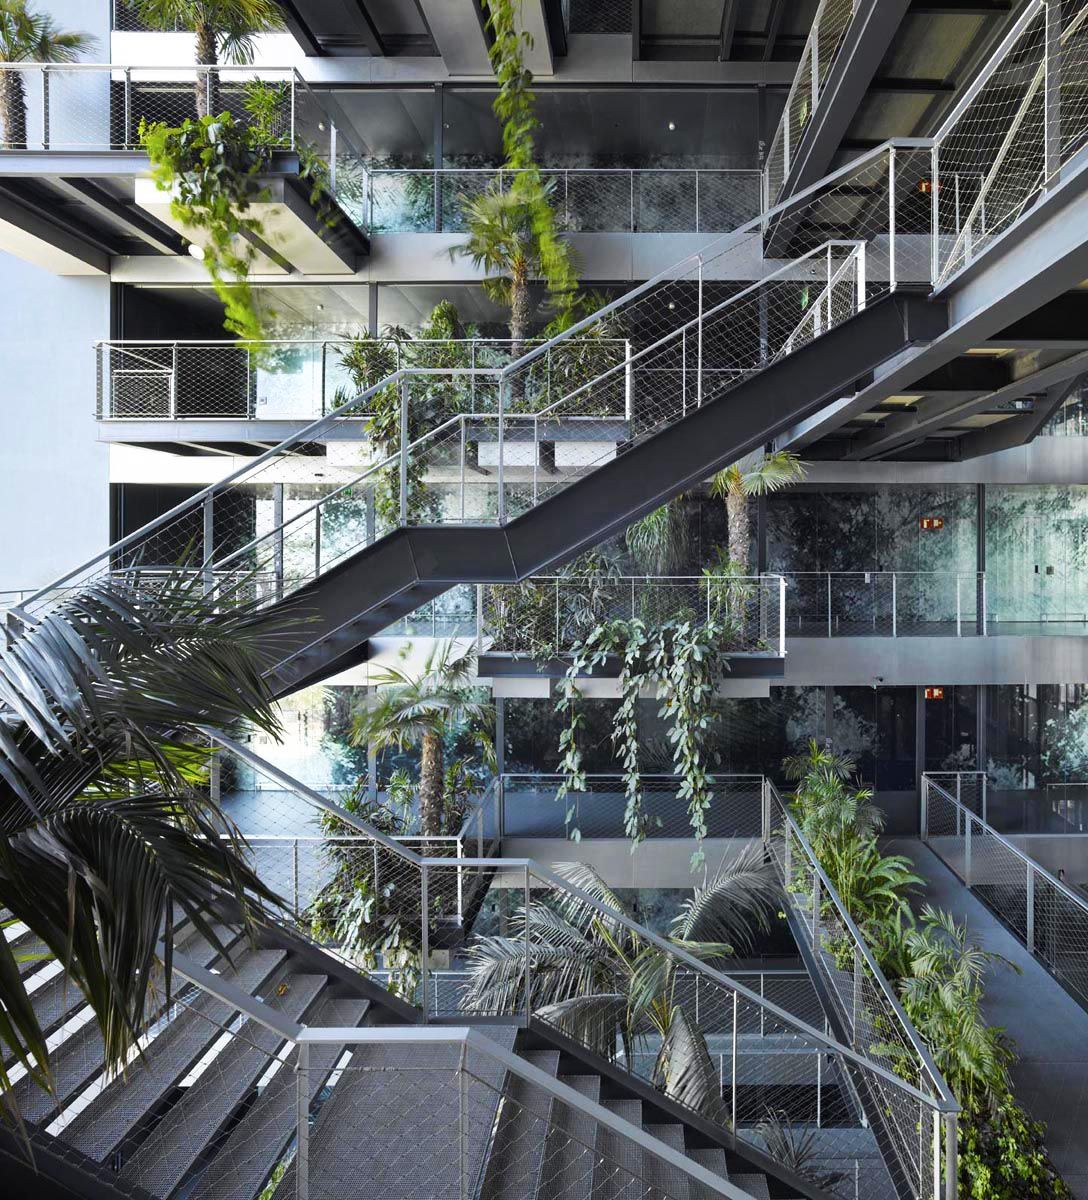 Jean nouvel pinned by nave industrial for Oficinas sanitas barcelona